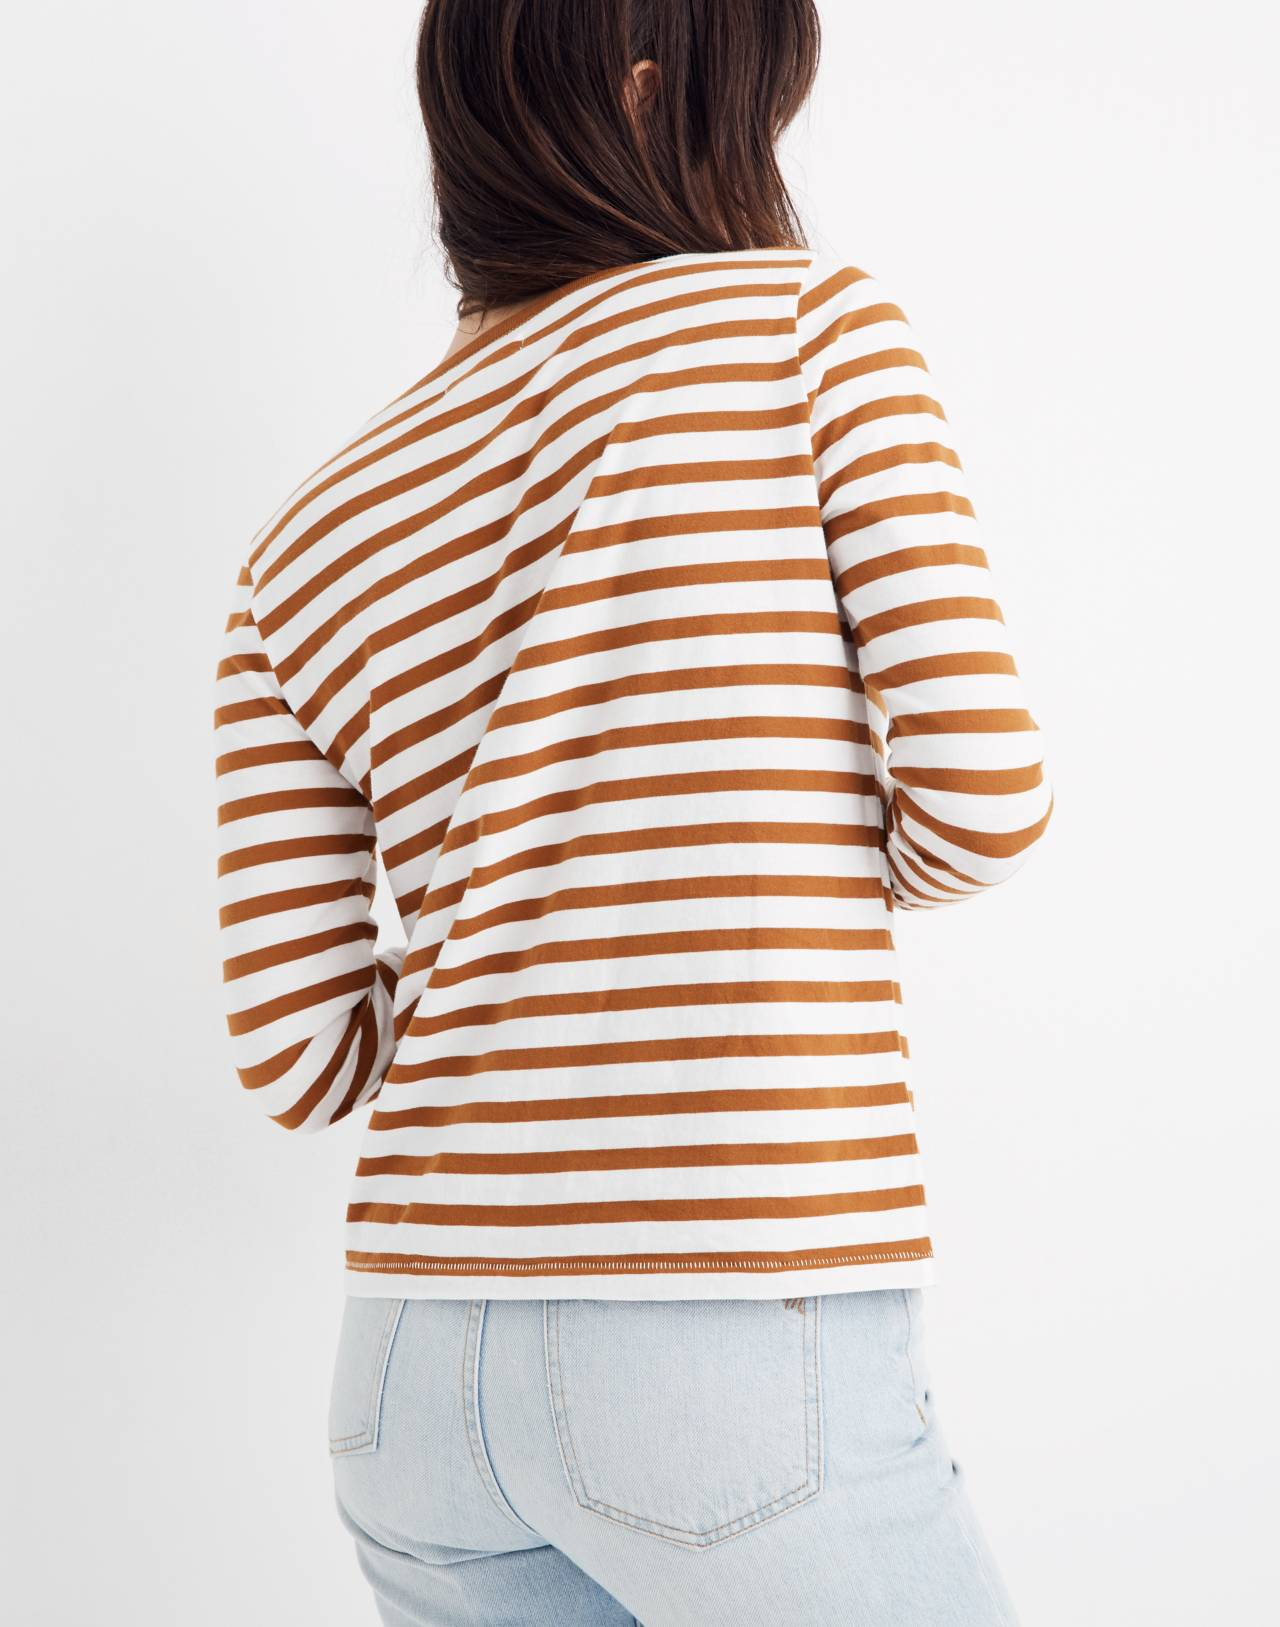 Northside Long-Sleeve Vintage Tee in Stripe in golden pecan dove stripe image 3